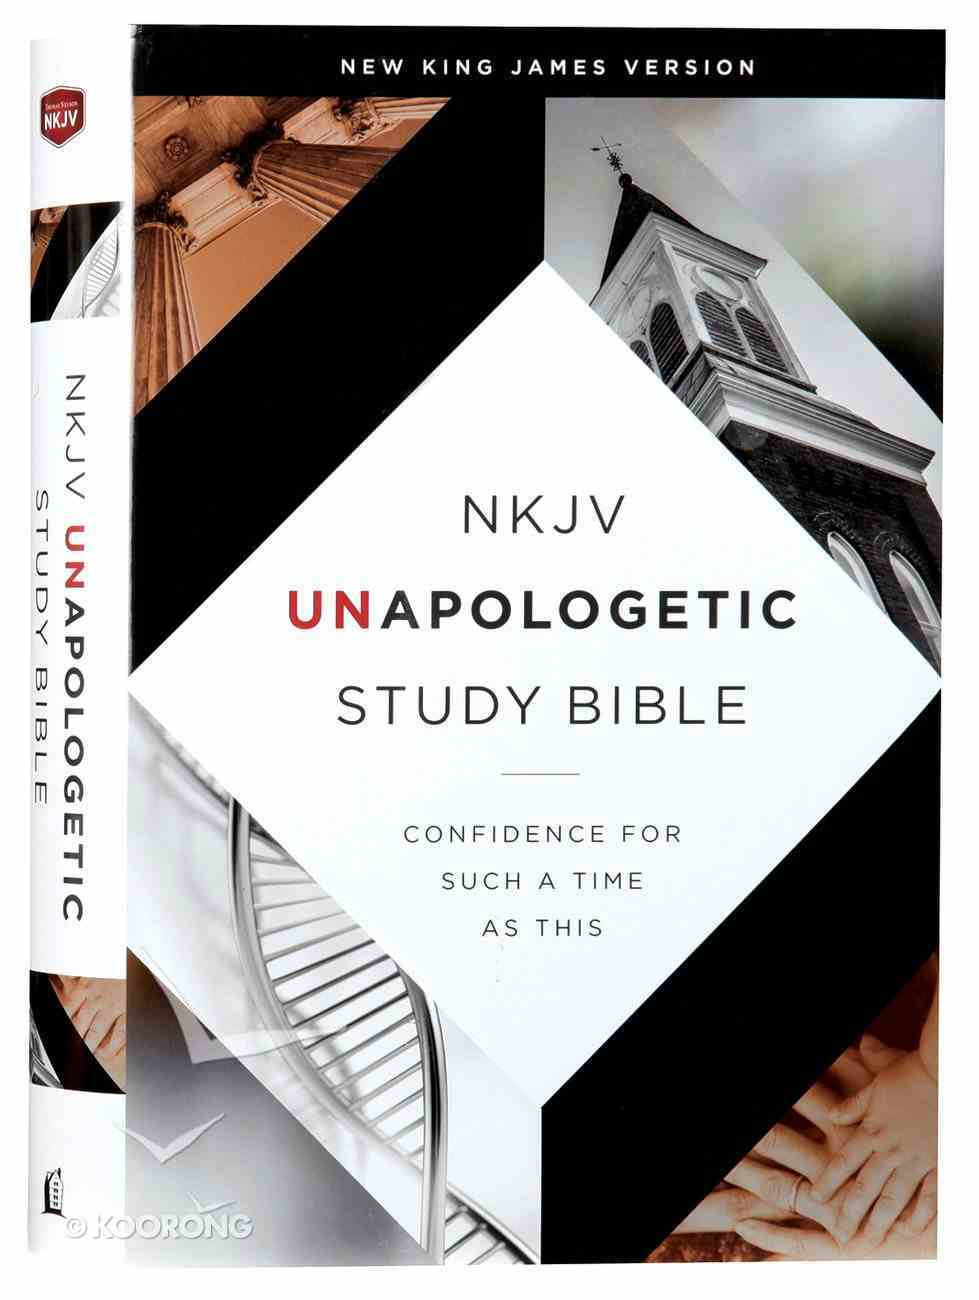 NKJV Unapologetic Study Bible (Red Letter Edition) Hardback